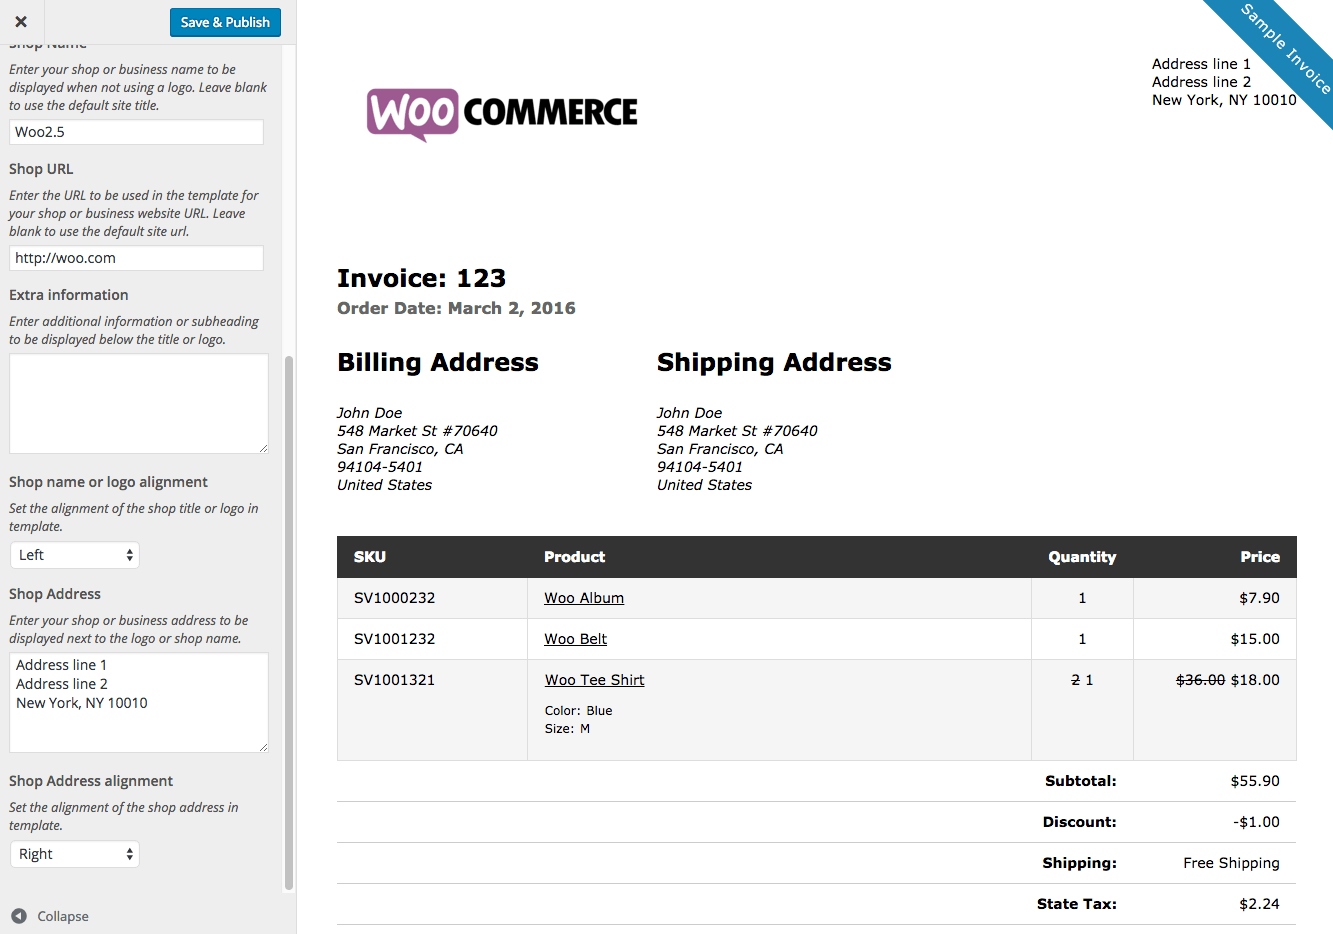 Carsforlessus  Unusual Woocommerce Print Invoices Amp Packing Lists  Woocommerce Docs With Outstanding Woocommerce Print Invoices  Packing Lists Customizer With Beautiful Wireless Receipt Printers Also Iphone App For Receipts In Addition Slow Cooker Receipt And Proof Of Purchase Without Receipt As Well As Neatdesk Receipt Scanner Additionally Personal Receipts From Docswoocommercecom With Carsforlessus  Outstanding Woocommerce Print Invoices Amp Packing Lists  Woocommerce Docs With Beautiful Woocommerce Print Invoices  Packing Lists Customizer And Unusual Wireless Receipt Printers Also Iphone App For Receipts In Addition Slow Cooker Receipt From Docswoocommercecom